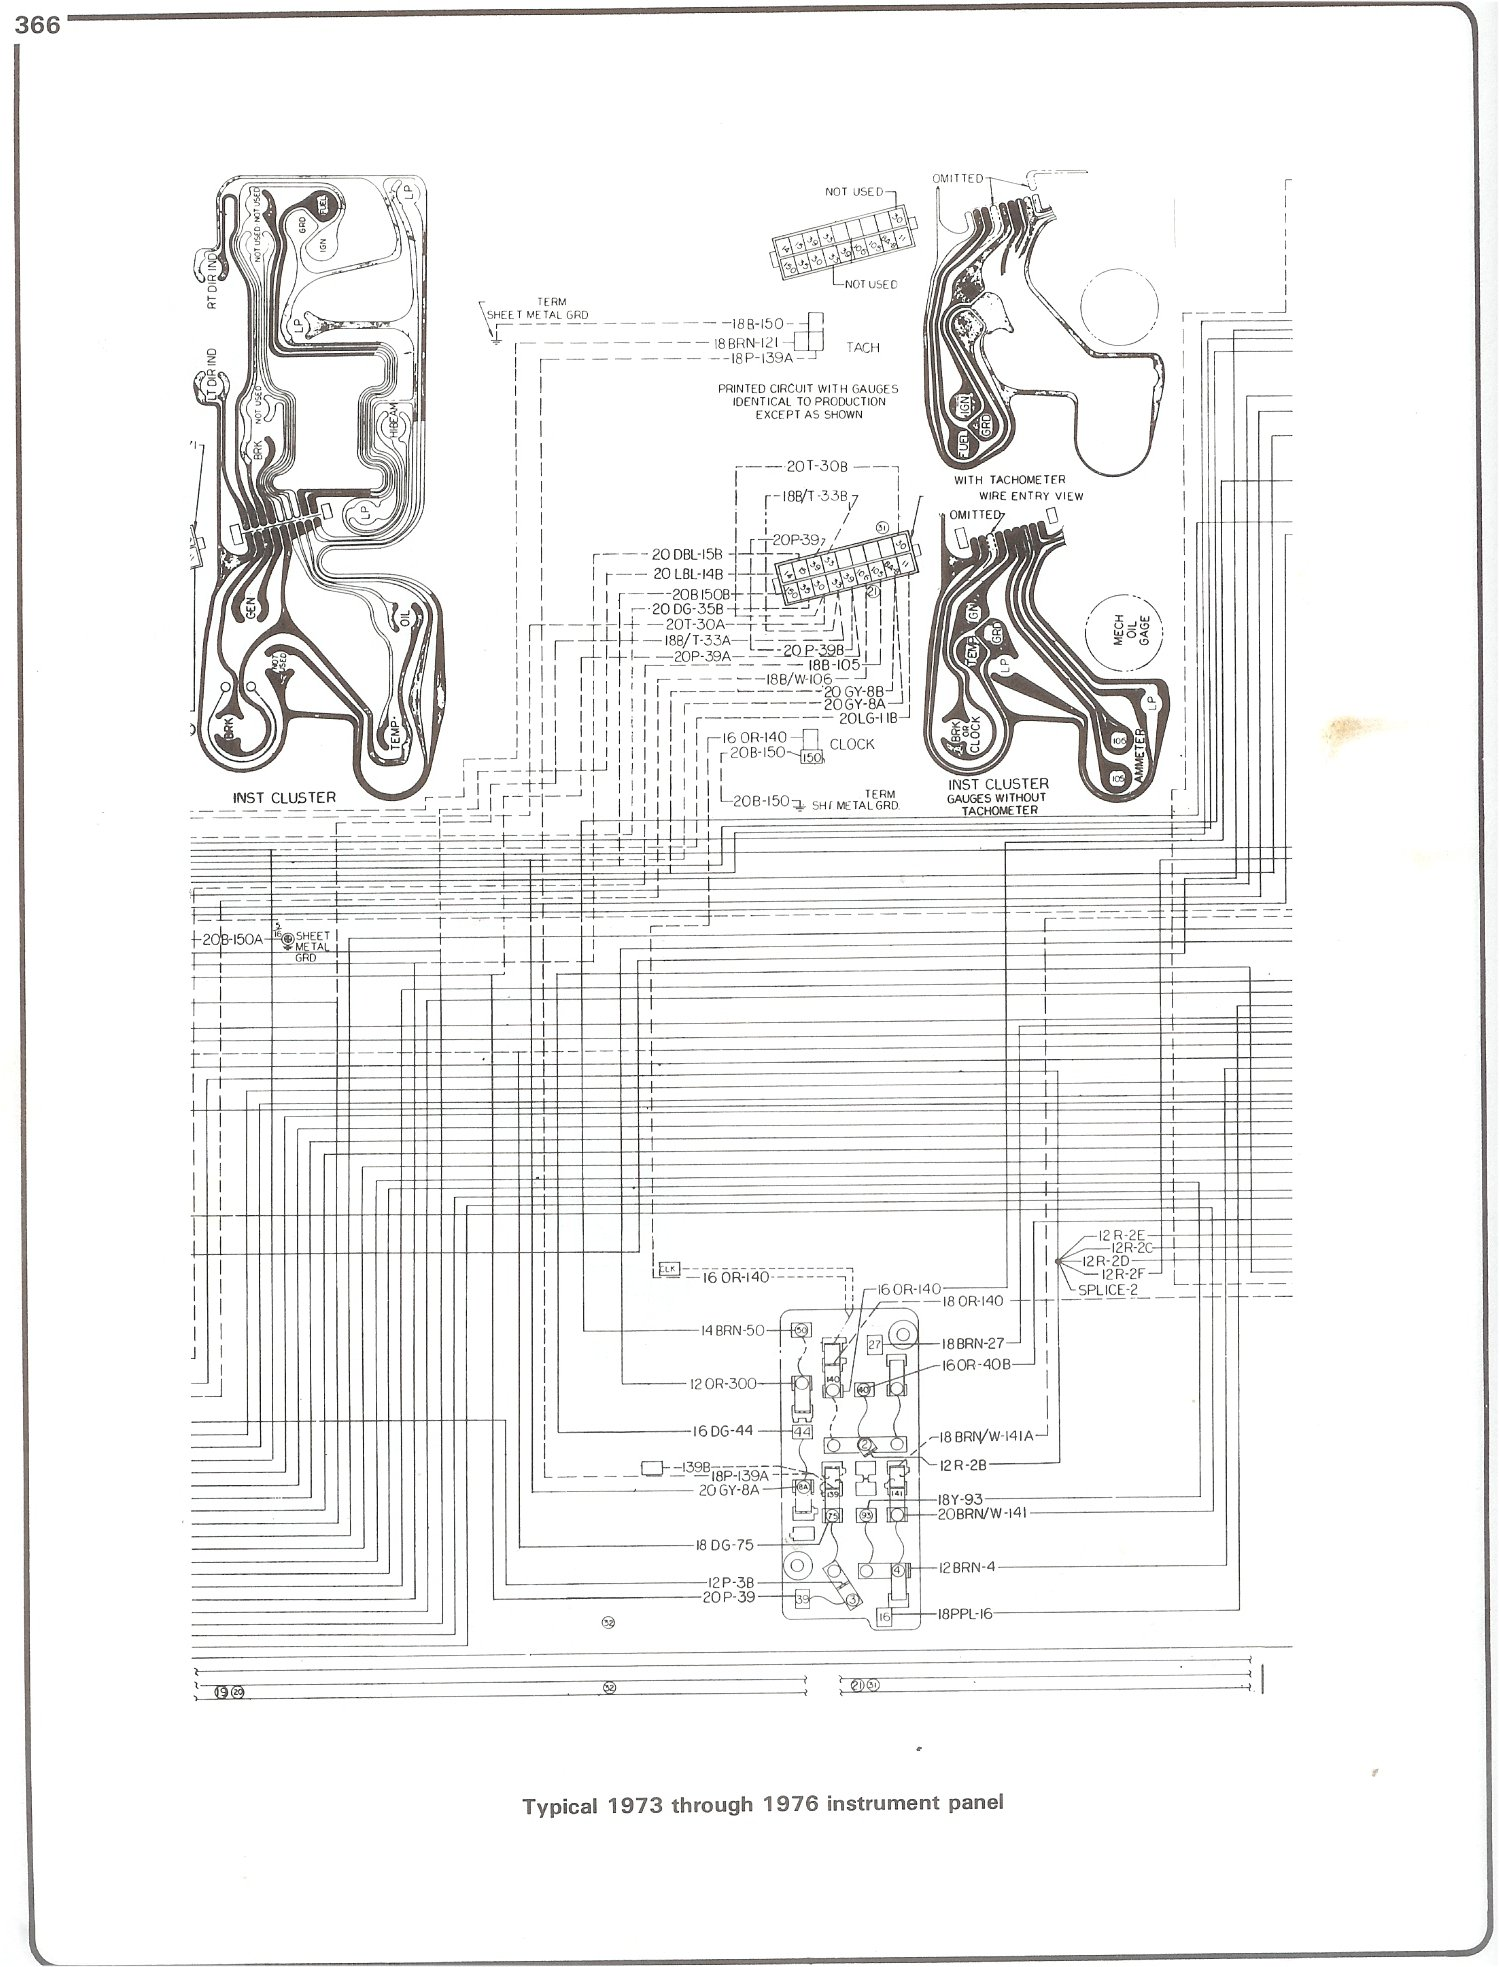 complete 73 87 wiring diagrams rh forum 73 87chevytrucks com 82 Chevy Truck Wiring Diagram 93 Chevy Truck Wiring Diagram